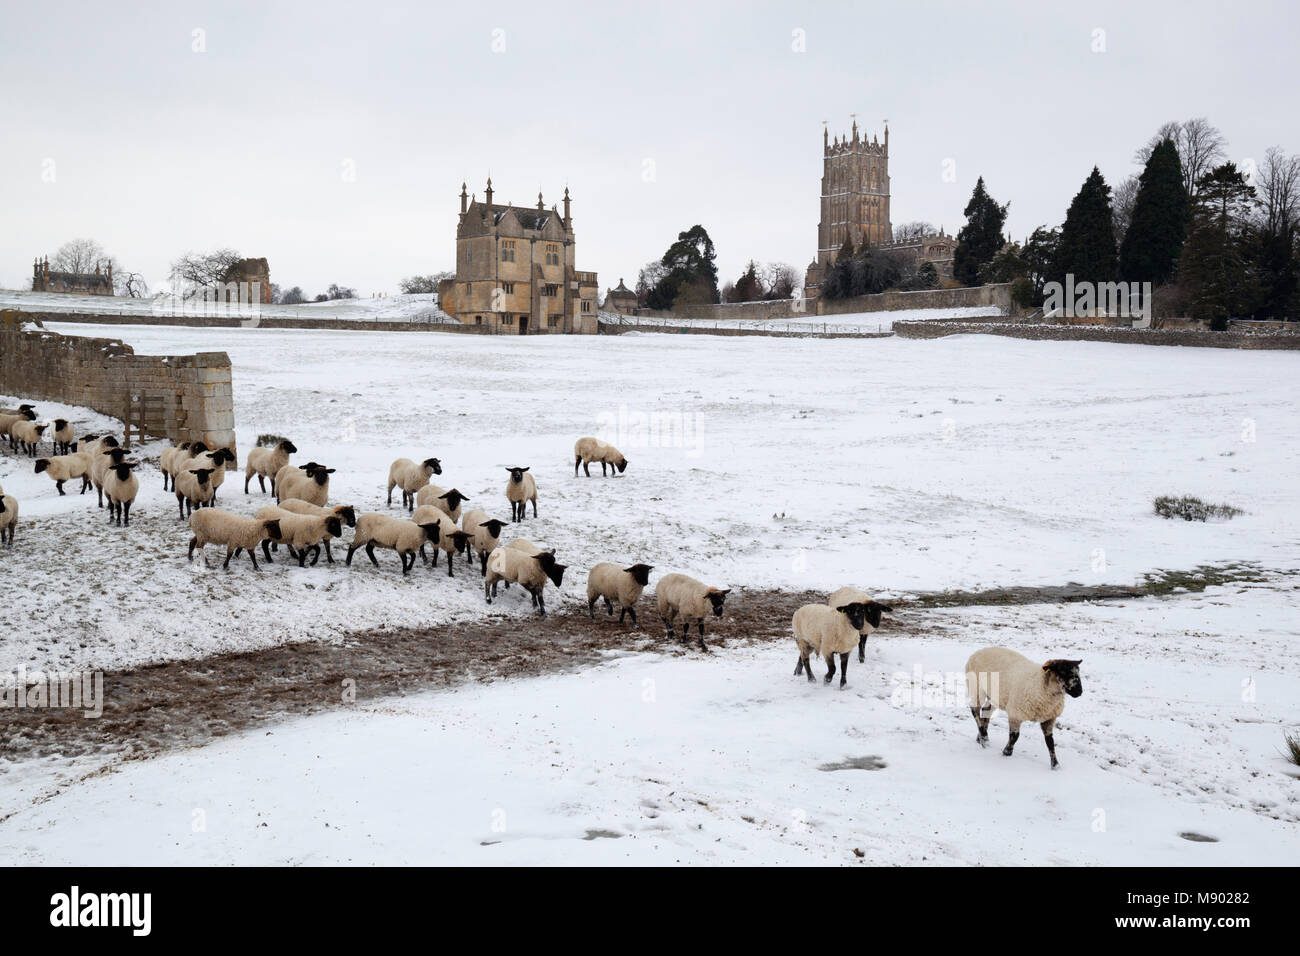 East Banqueting House of Old Campden House and St James' church with sheep in the coneygree field in winter - Stock Image